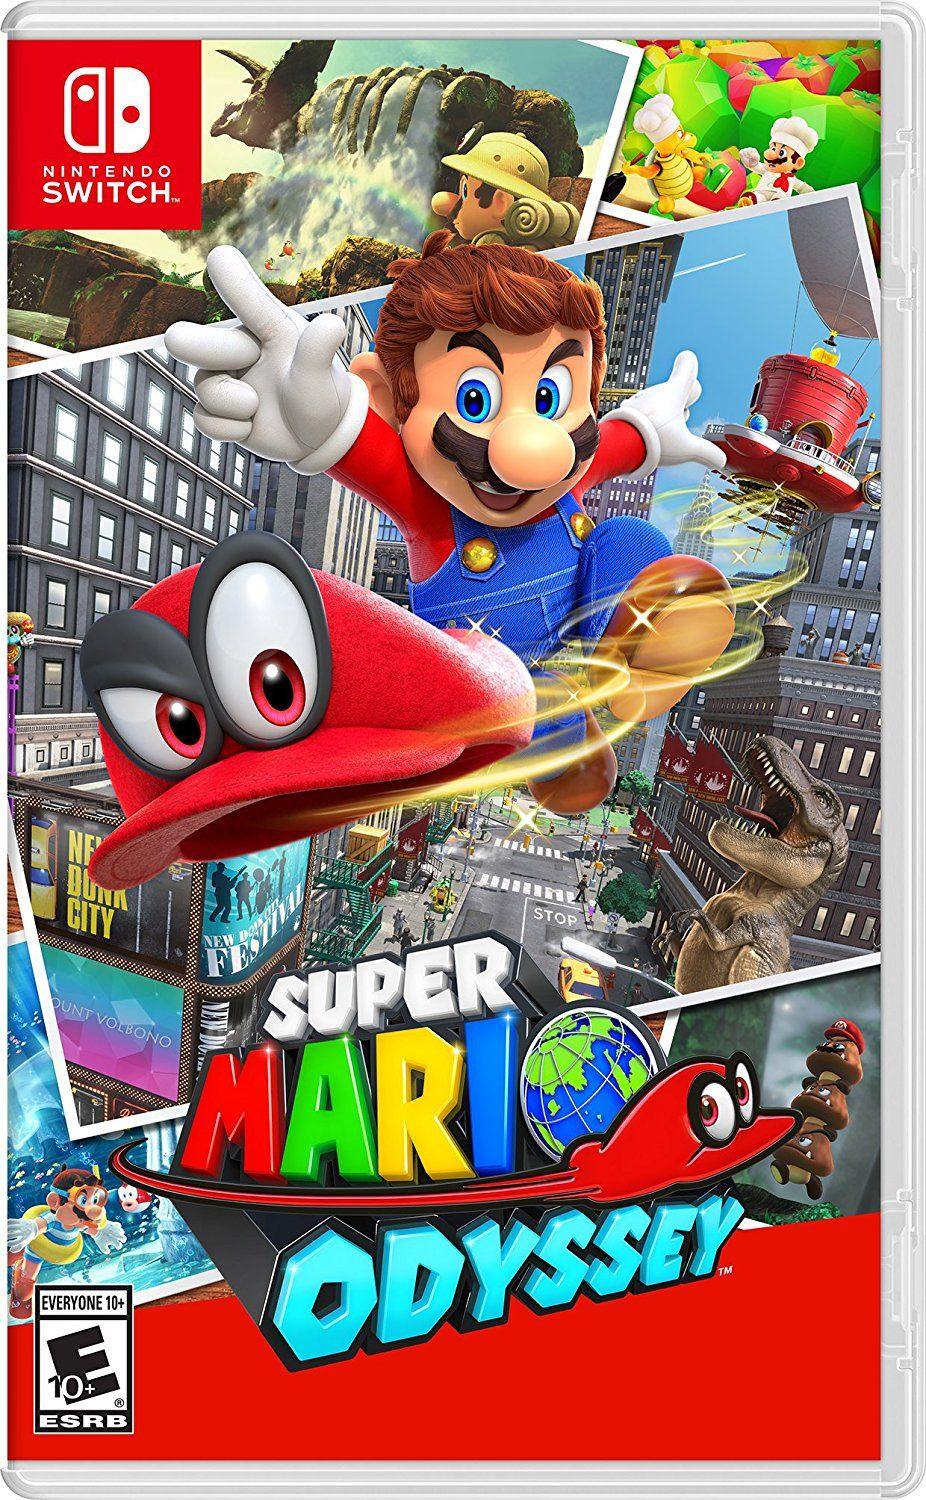 Get The Super Mario Odyssey Game For Nintendo Switch Only For 58 95 On Amazon Get It Know Nintendo Switch Super Mario Nintendo Switch Games Super Mario Party